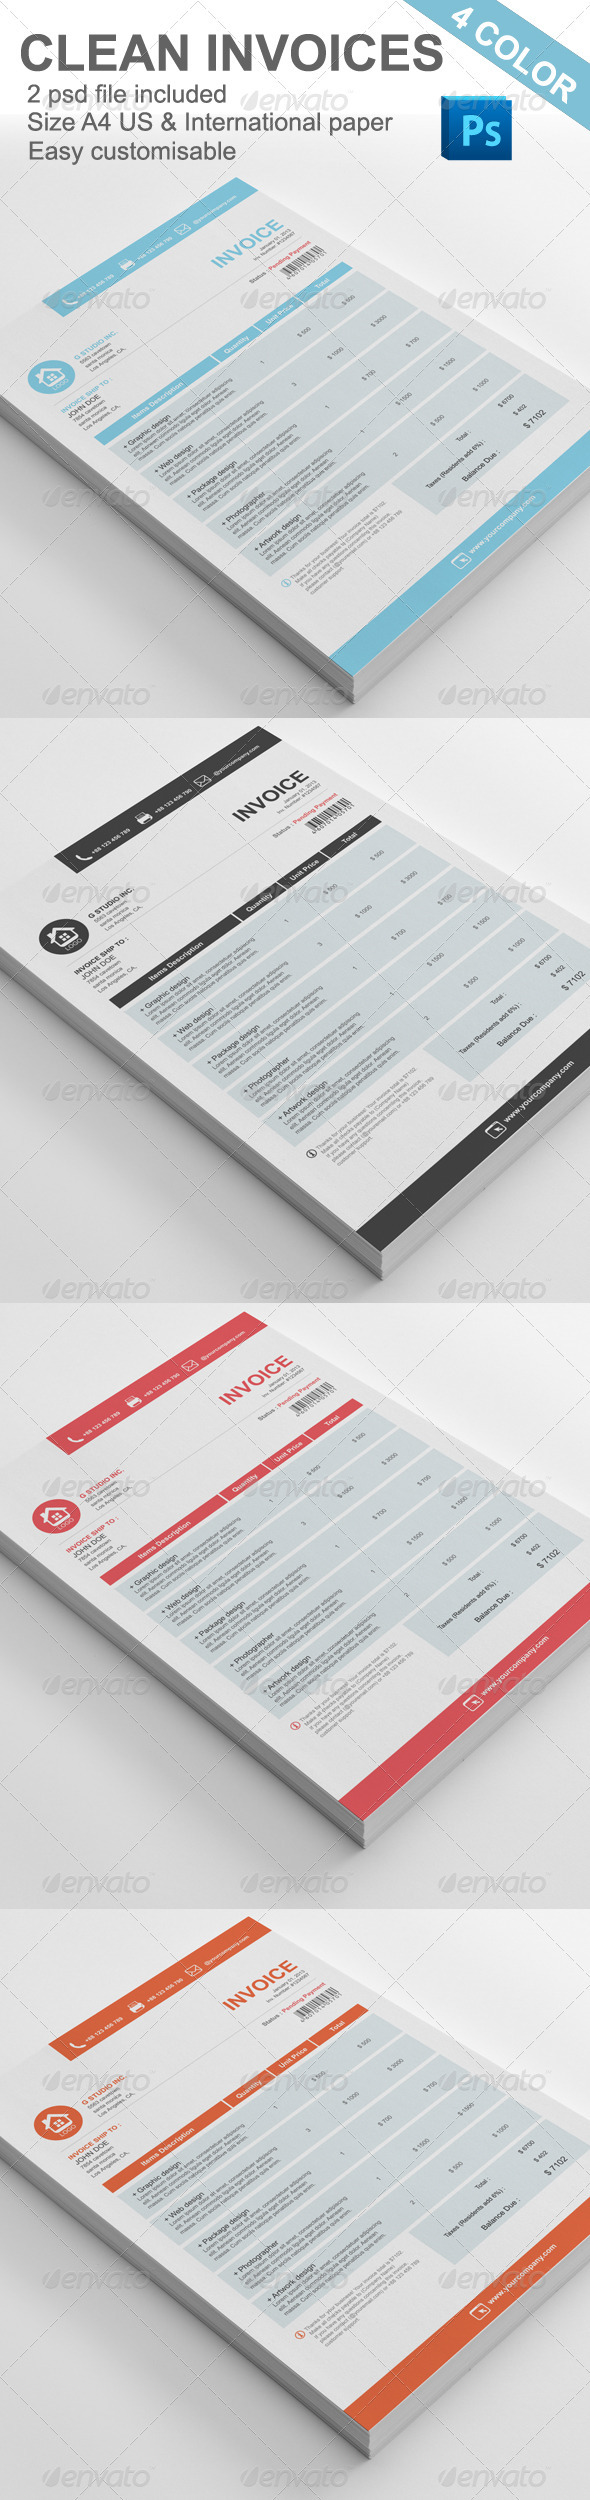 GraphicRiver Gstudio Clean Invoices Template 3583781